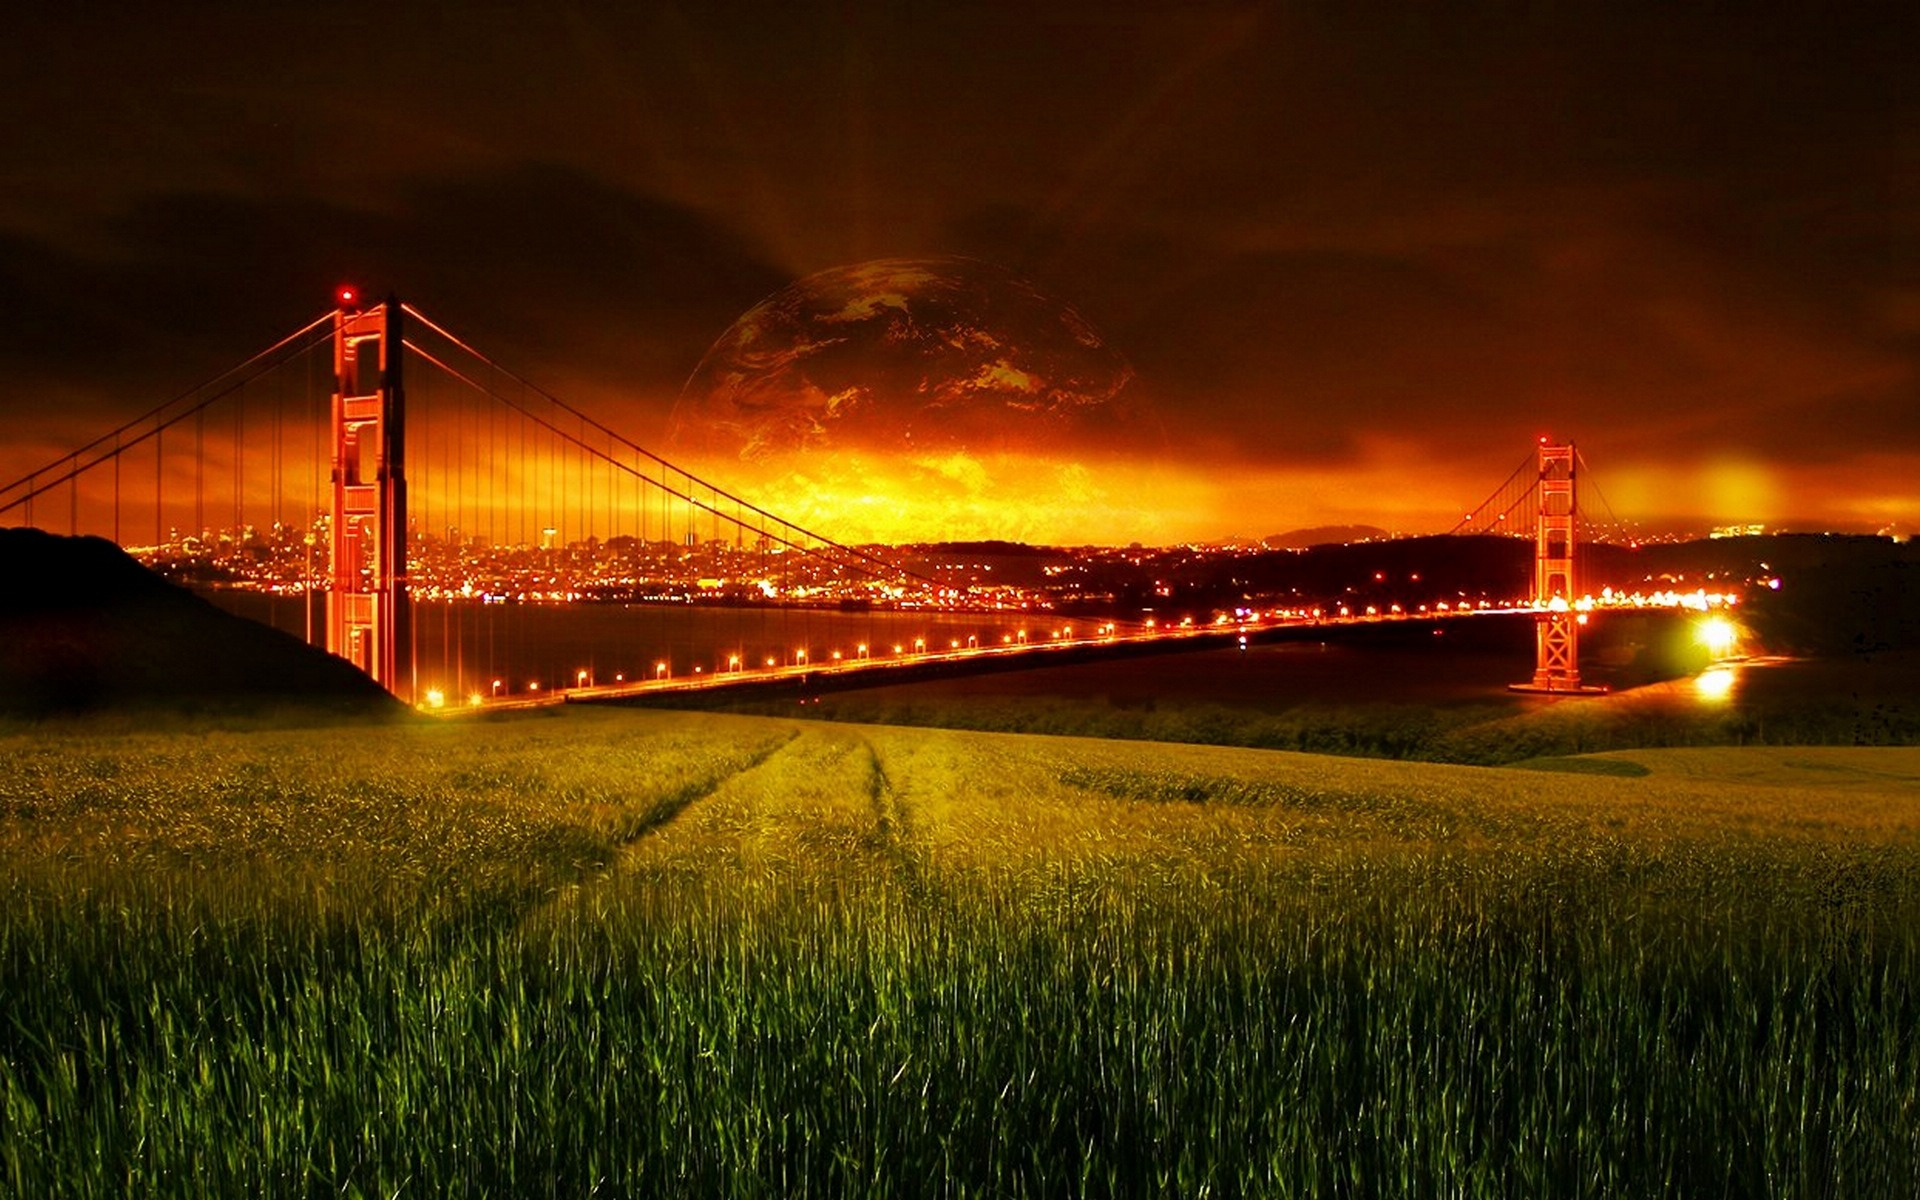 Fantasy Golden Gate Bridge Wallpaper 1920x1200